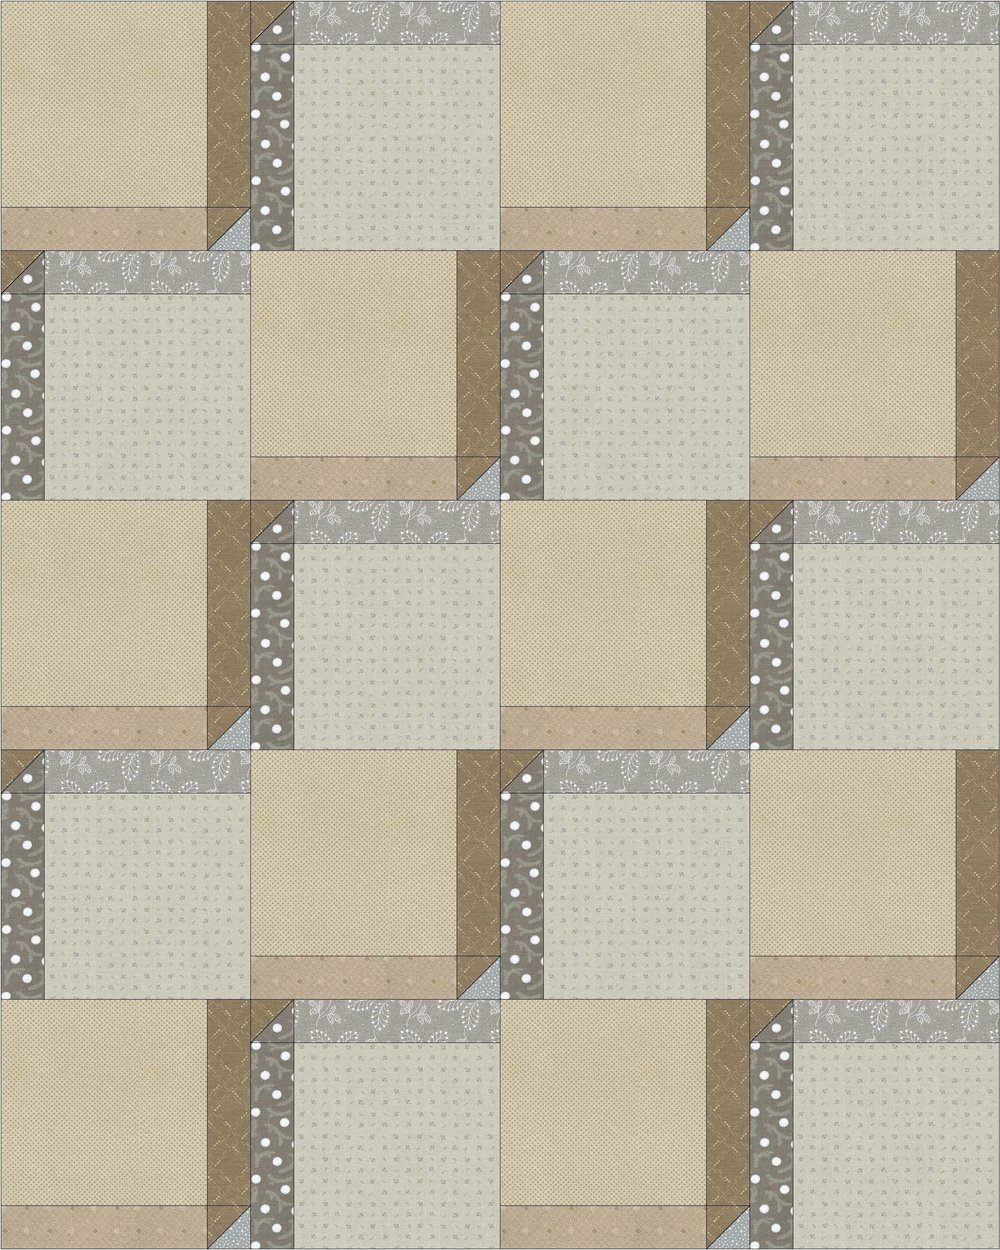 fractured diamonds whole quilt.png